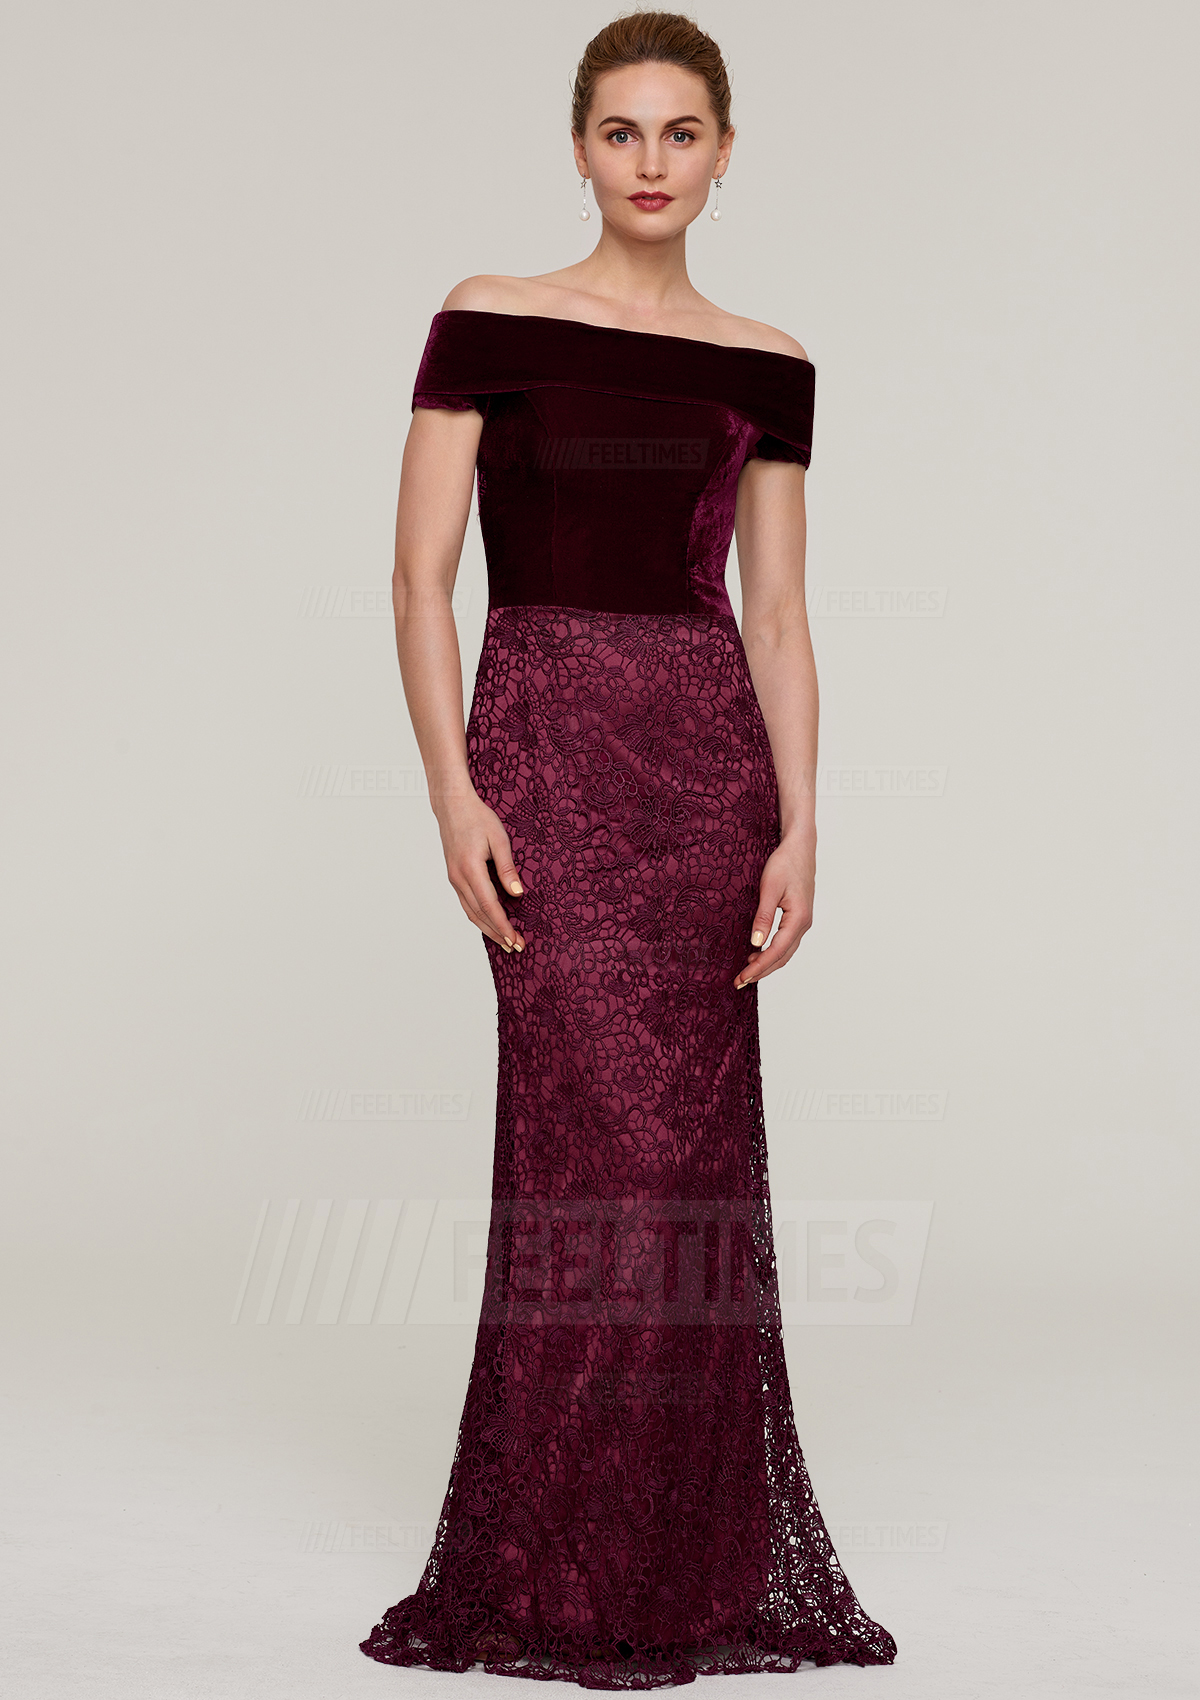 1b985ff4537 Sheath/Column Off-The-Shoulder Sleeveless Sweep Train Lace Mother Of The  Bride Dress - FeelTimes